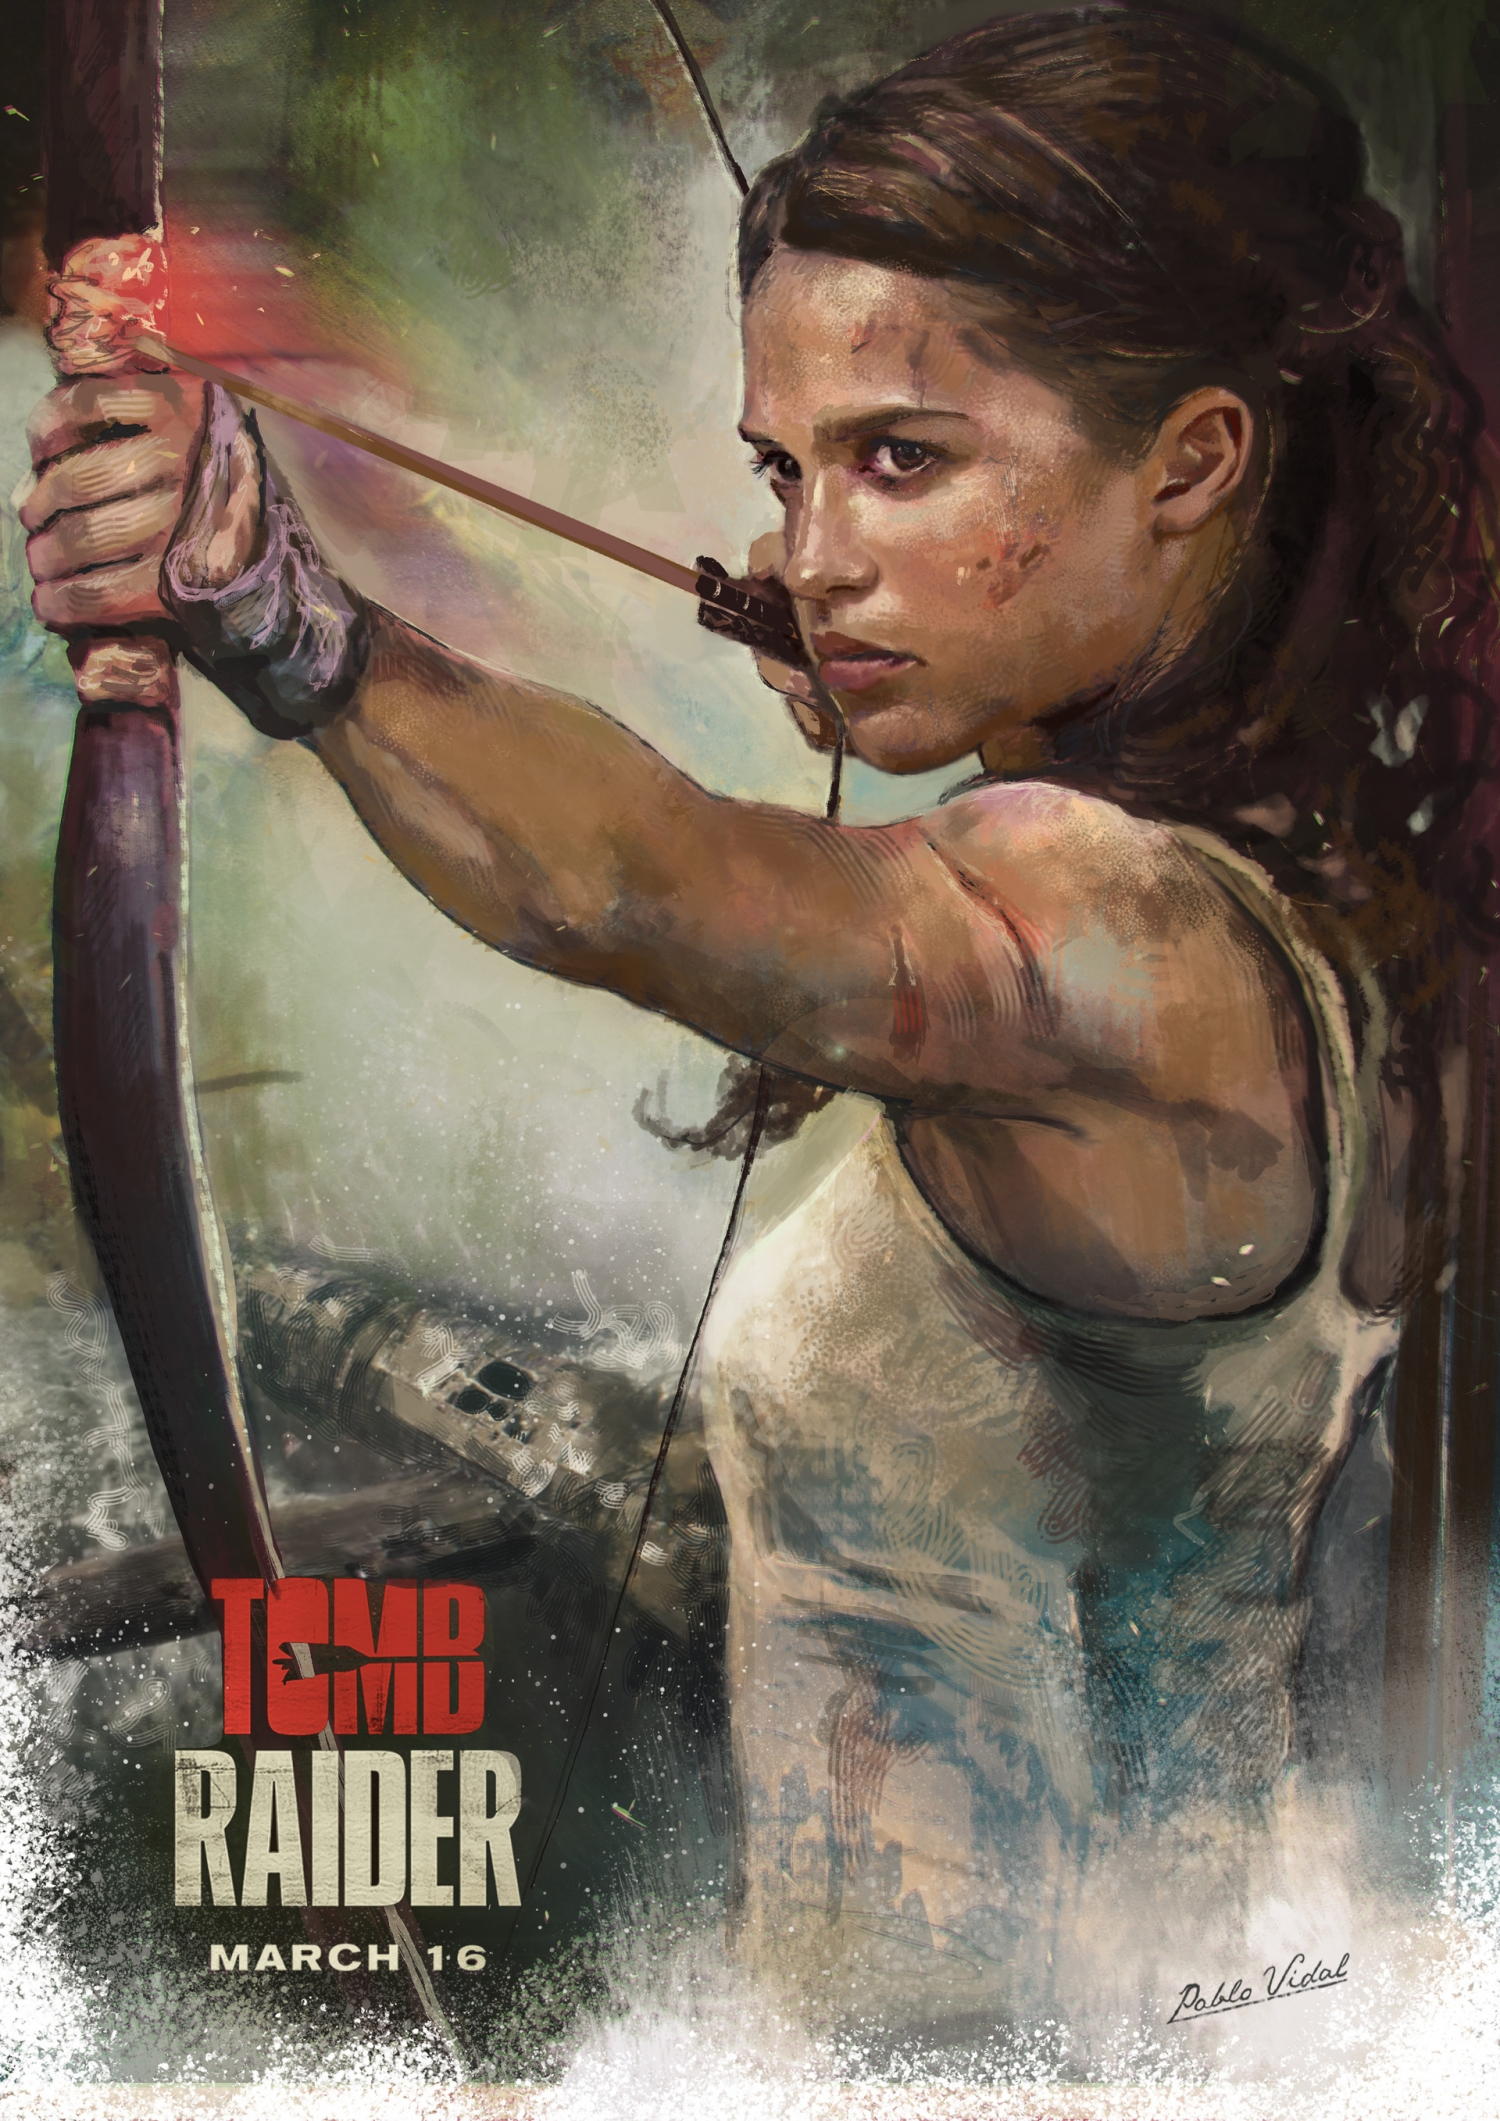 tomb raider movie poster hd